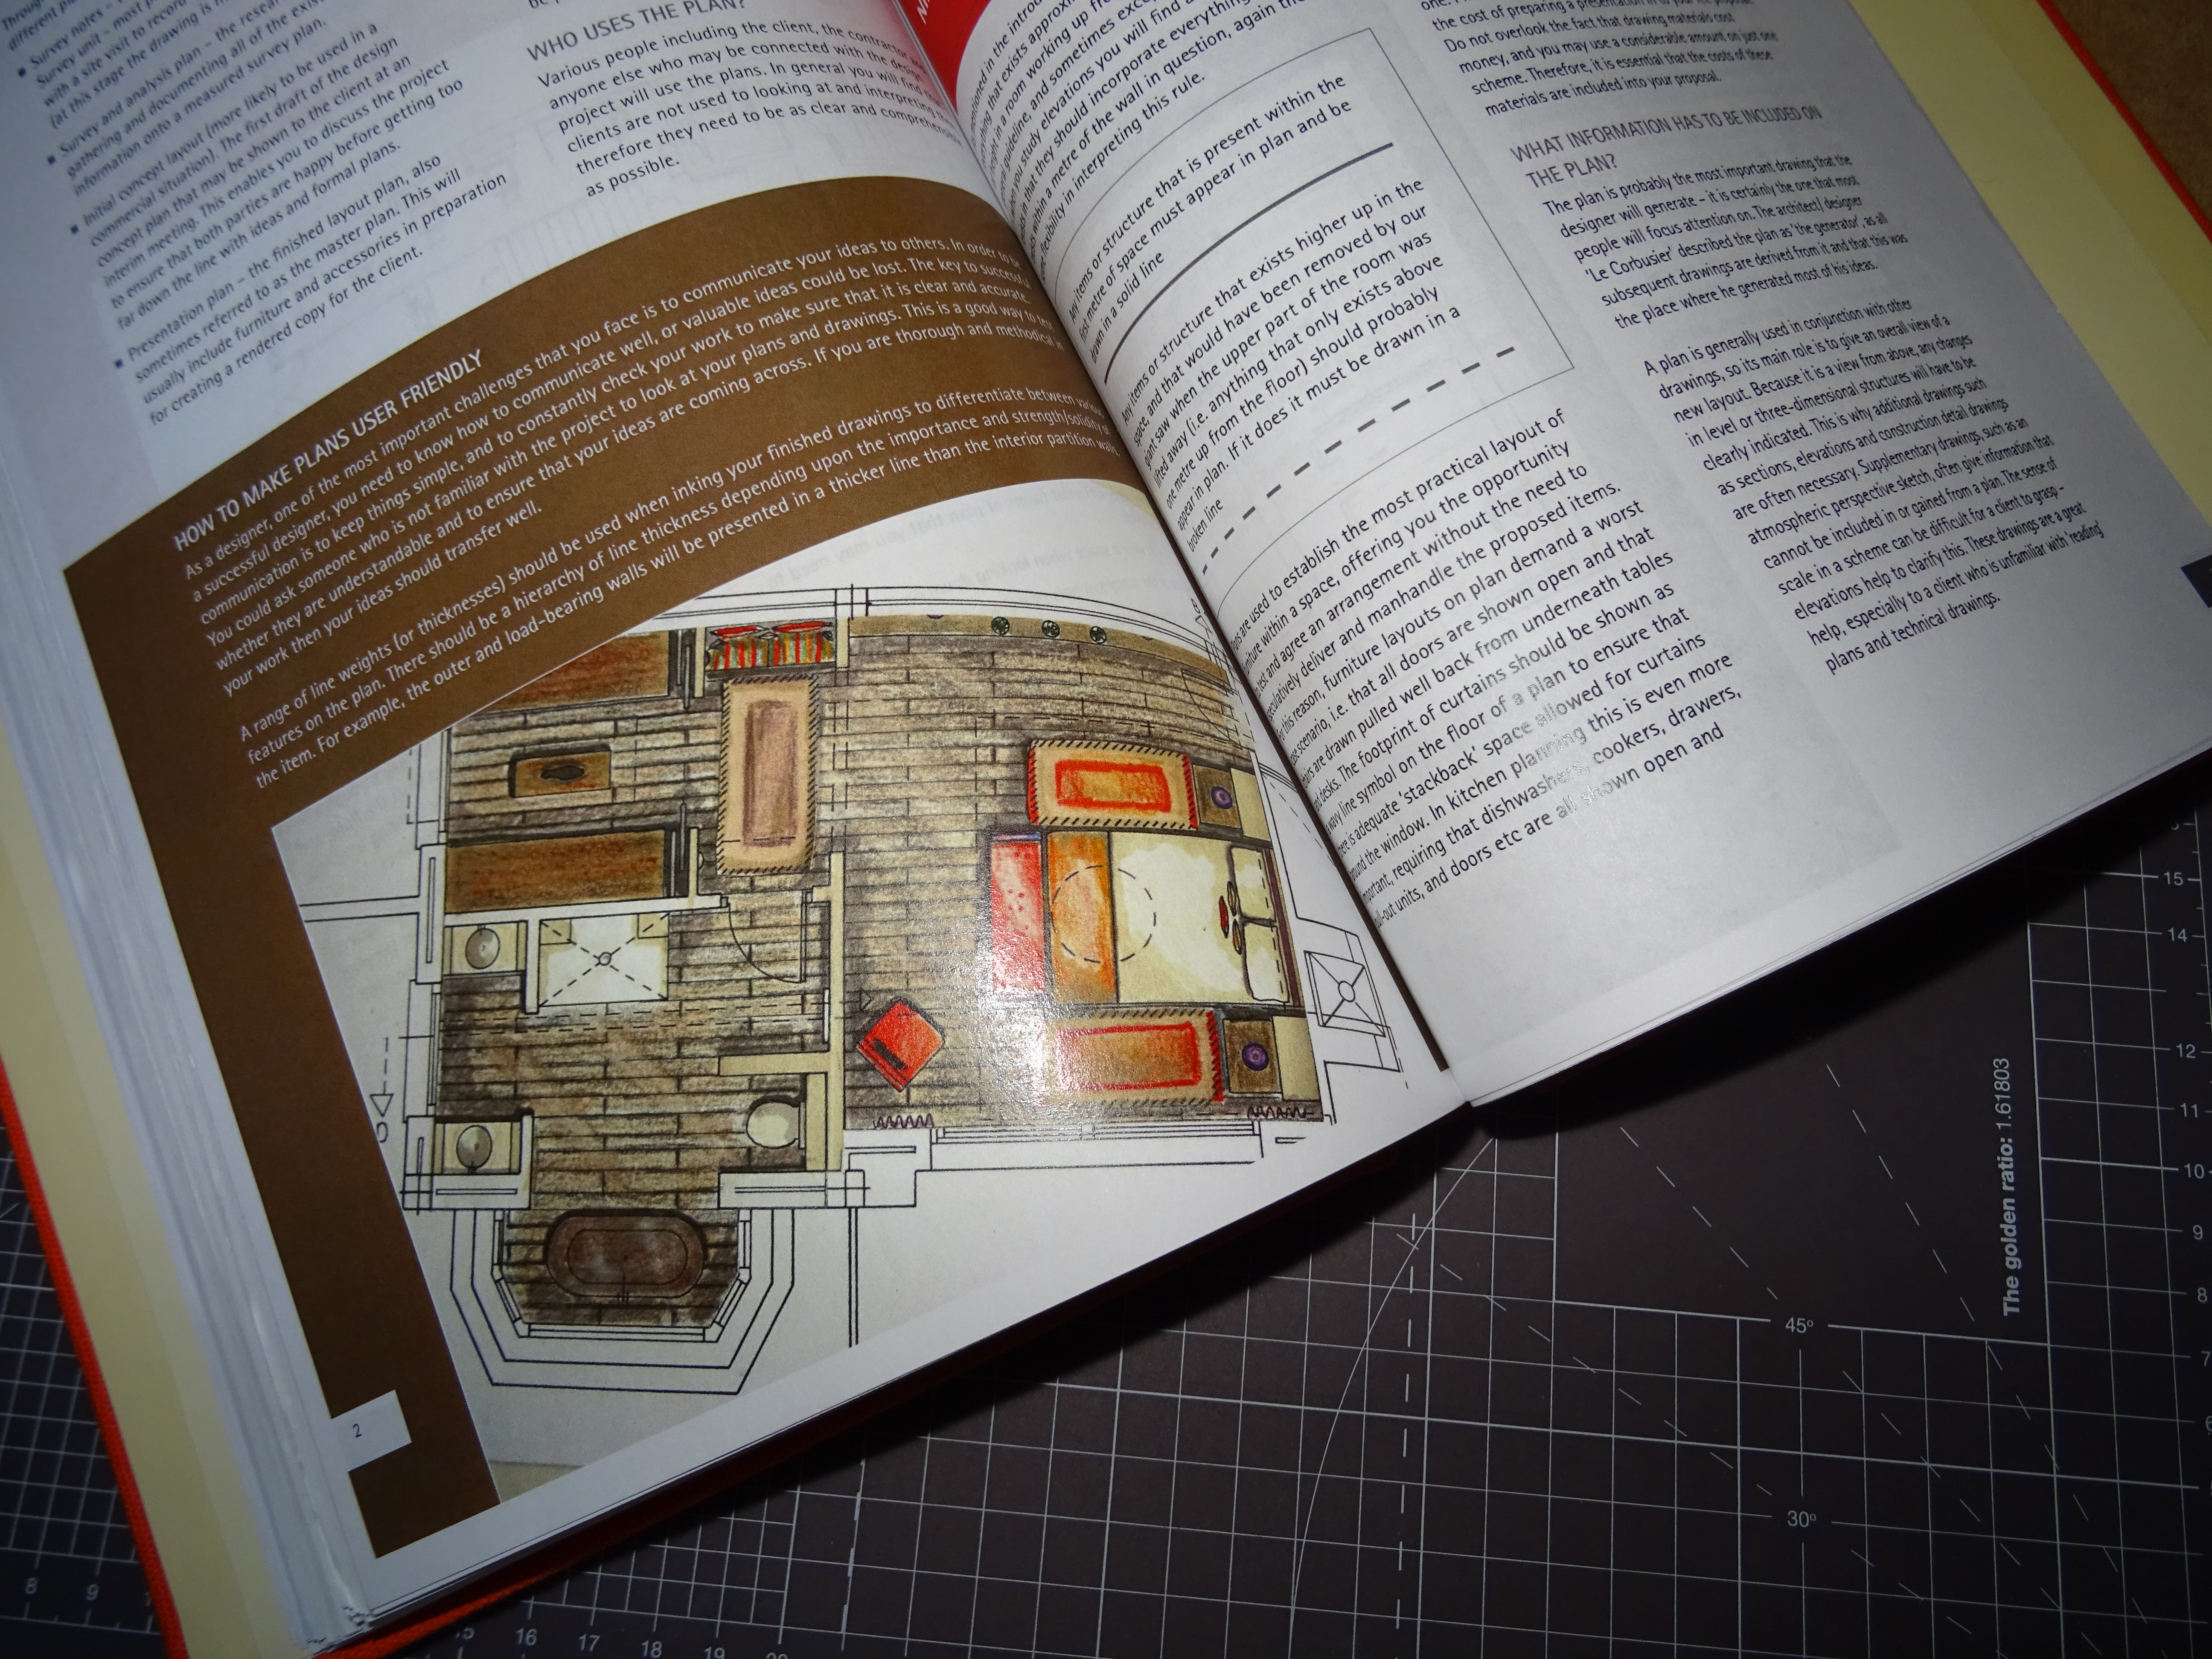 Interior Design Diploma At KLC Ive Submitted My First Project